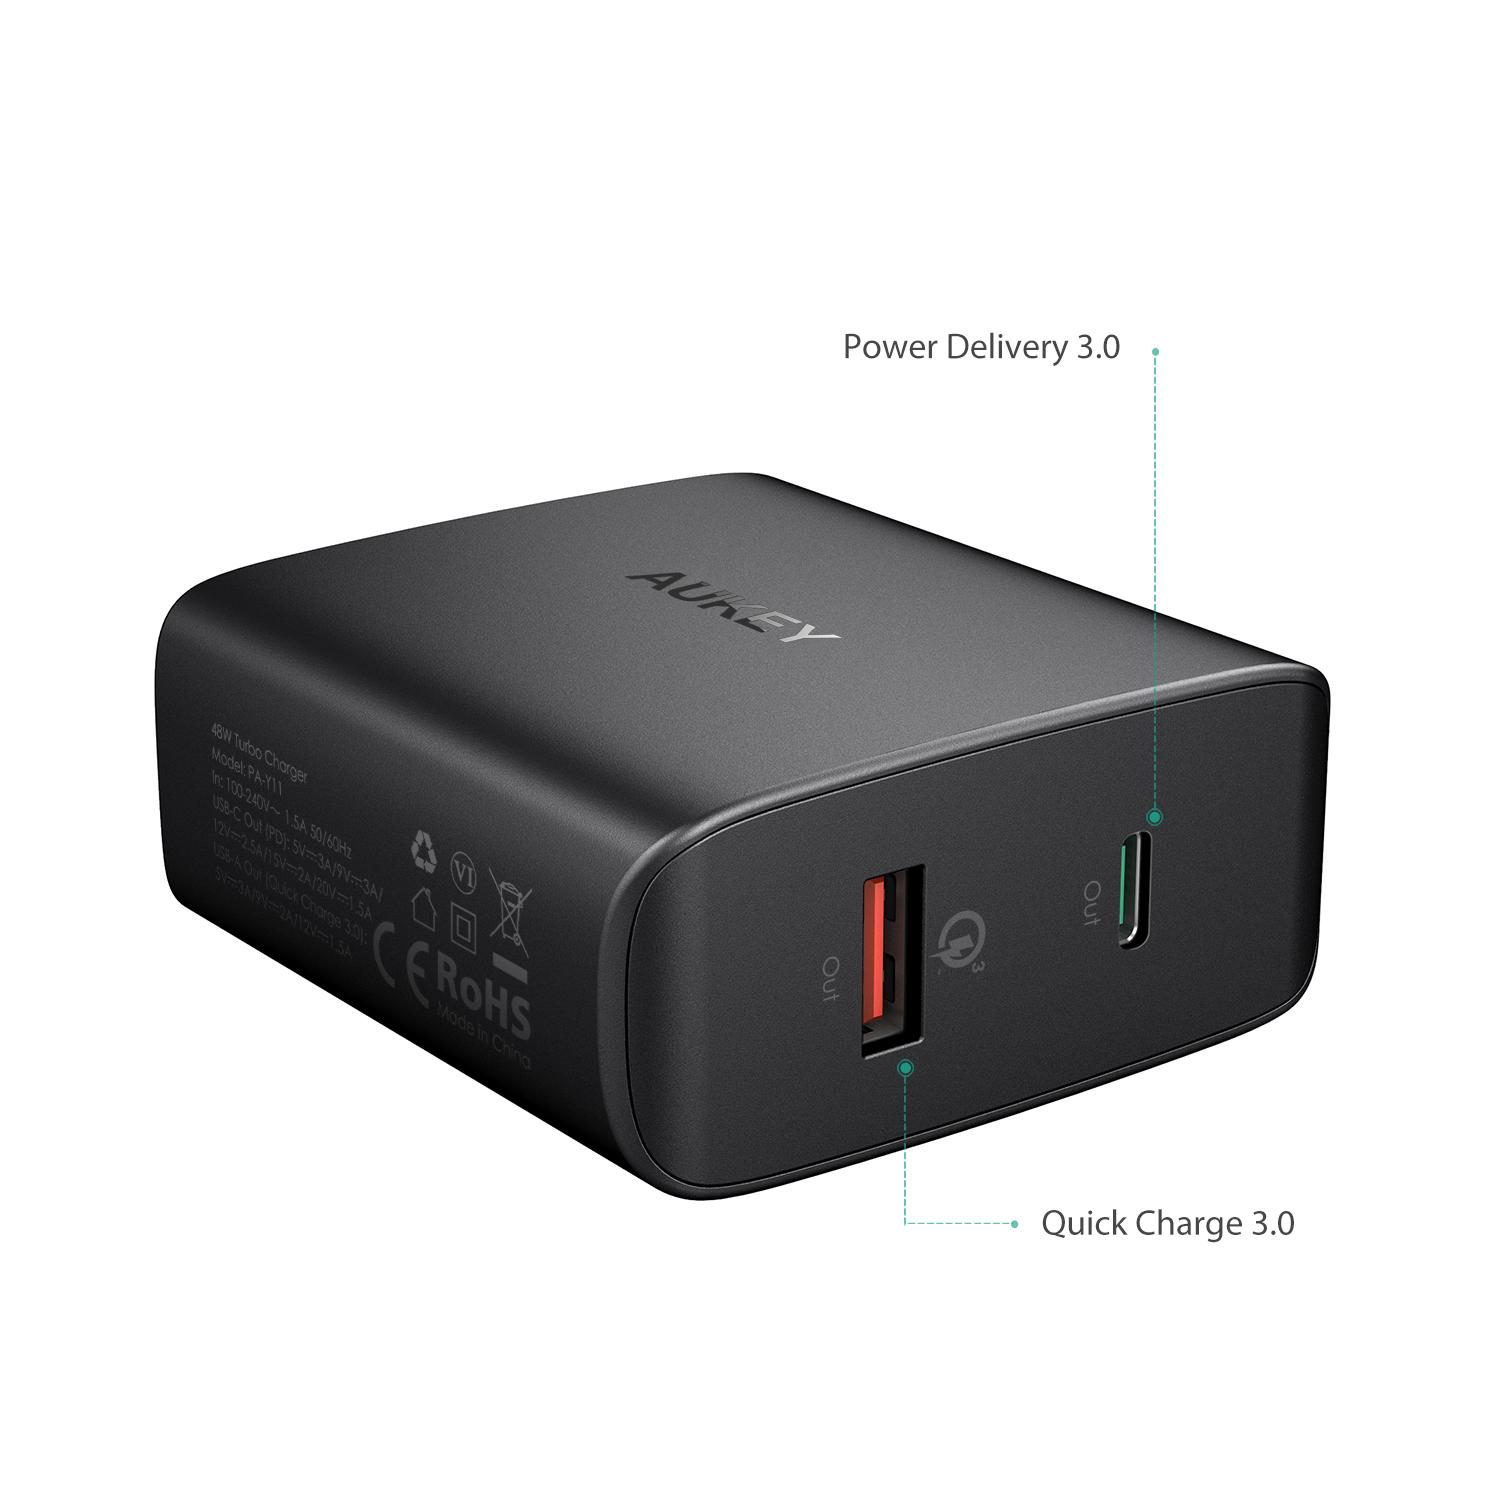 Aukeylux Buy At Best Price In Myanmar Travel Home Adaptor Charger Aukey Turbo Charge Pa T9 Quick Qualcomm 30 Original Y11 Amp Type C With Pd 48w Dual